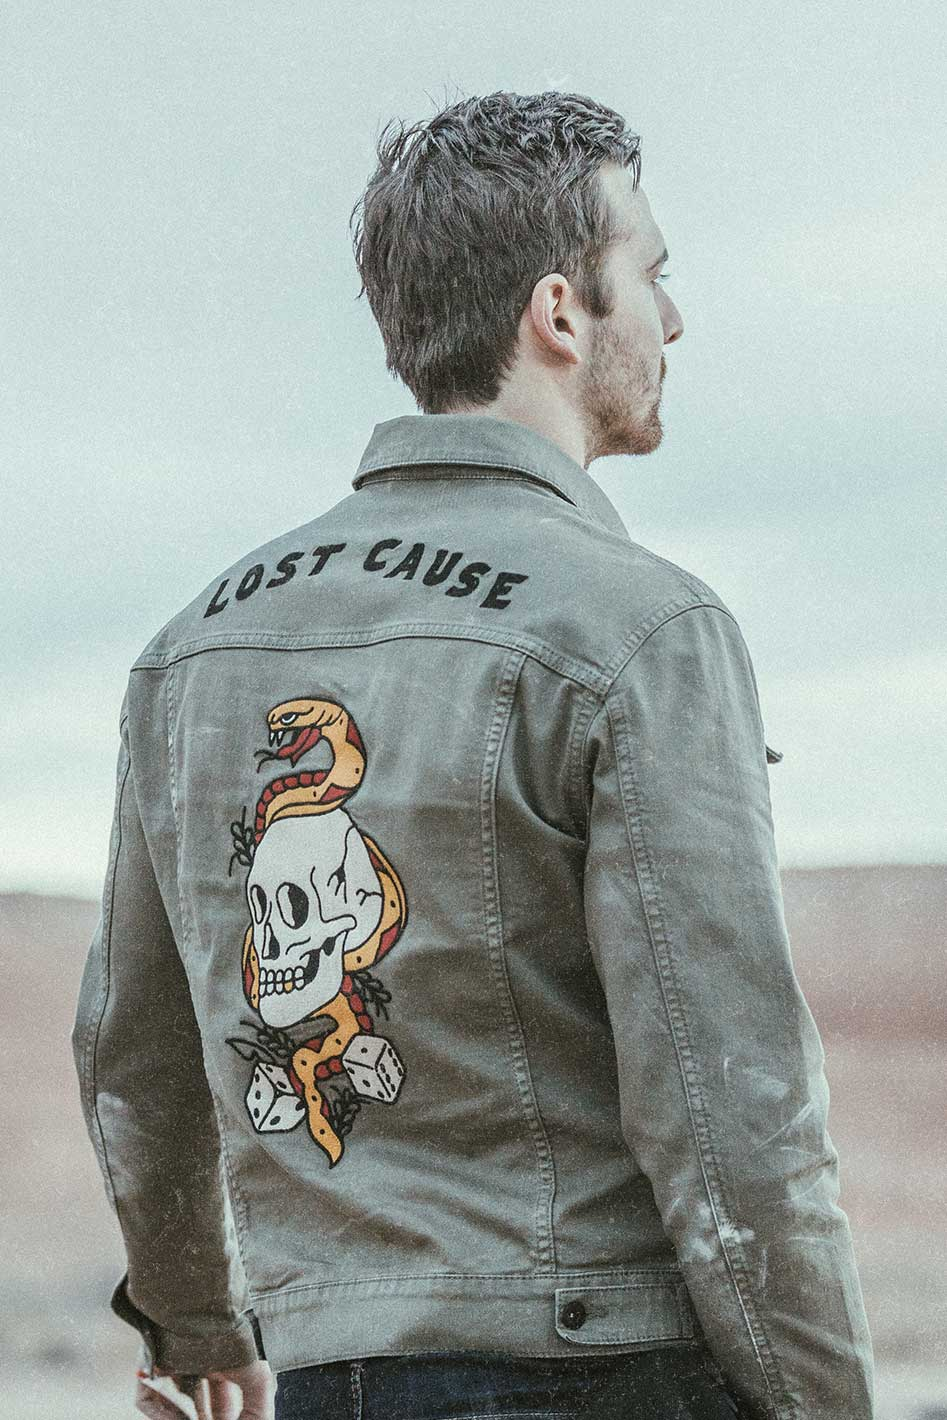 Provision & Co (P&Co) - Lost Cause Collection 2018 Spring